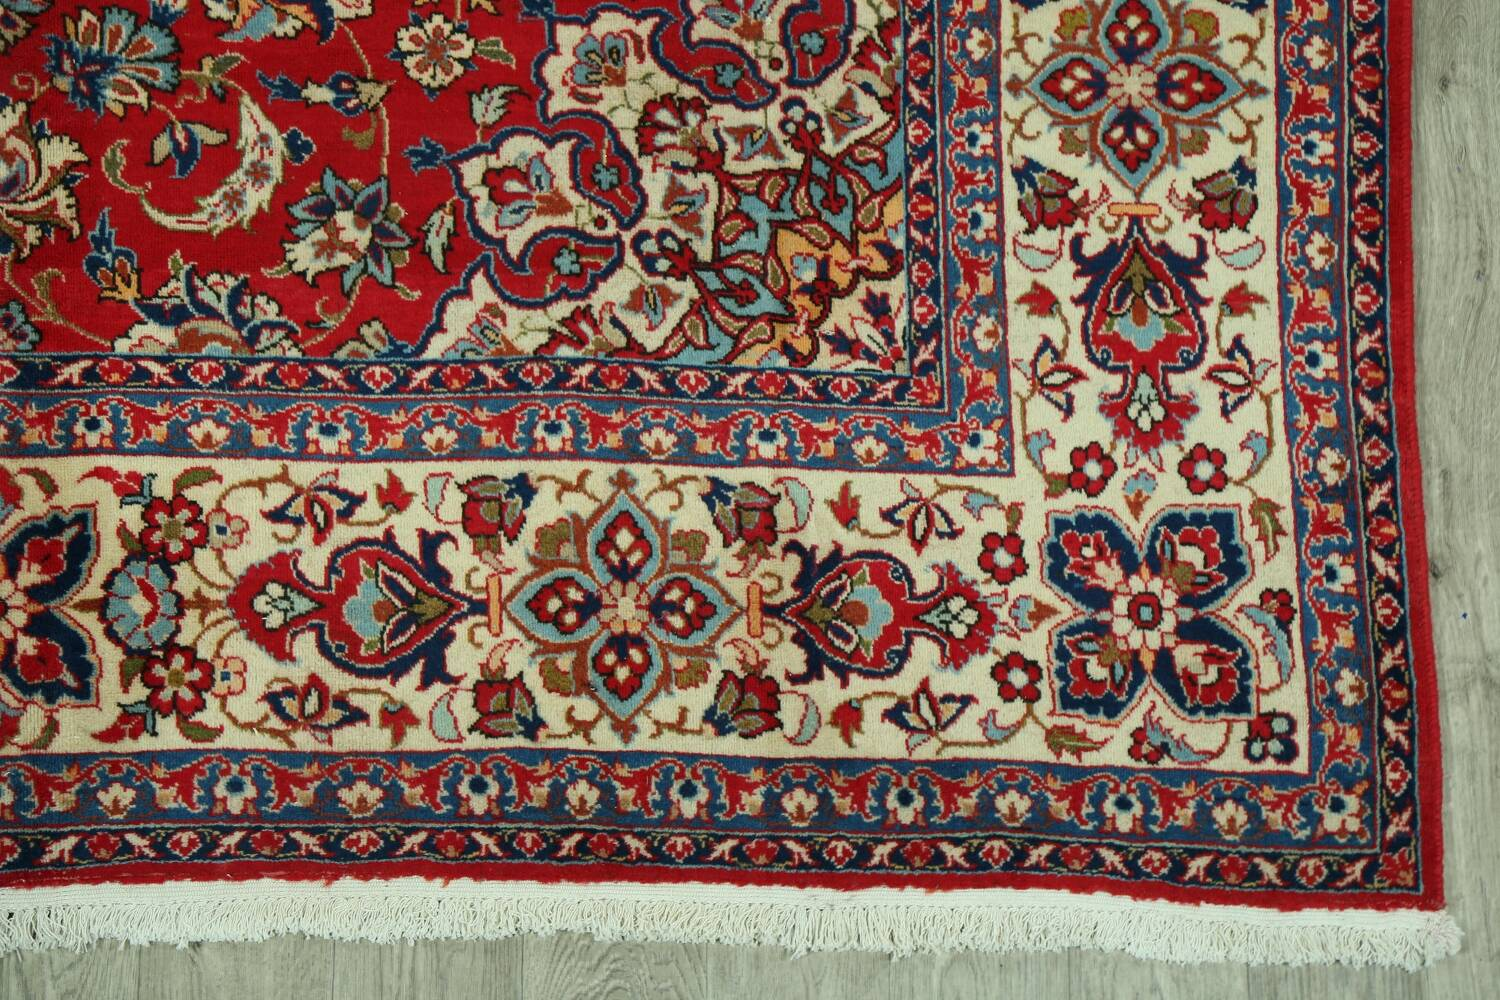 Vintage Floral Red Najafabad Persian Area Rug 8x12 image 5